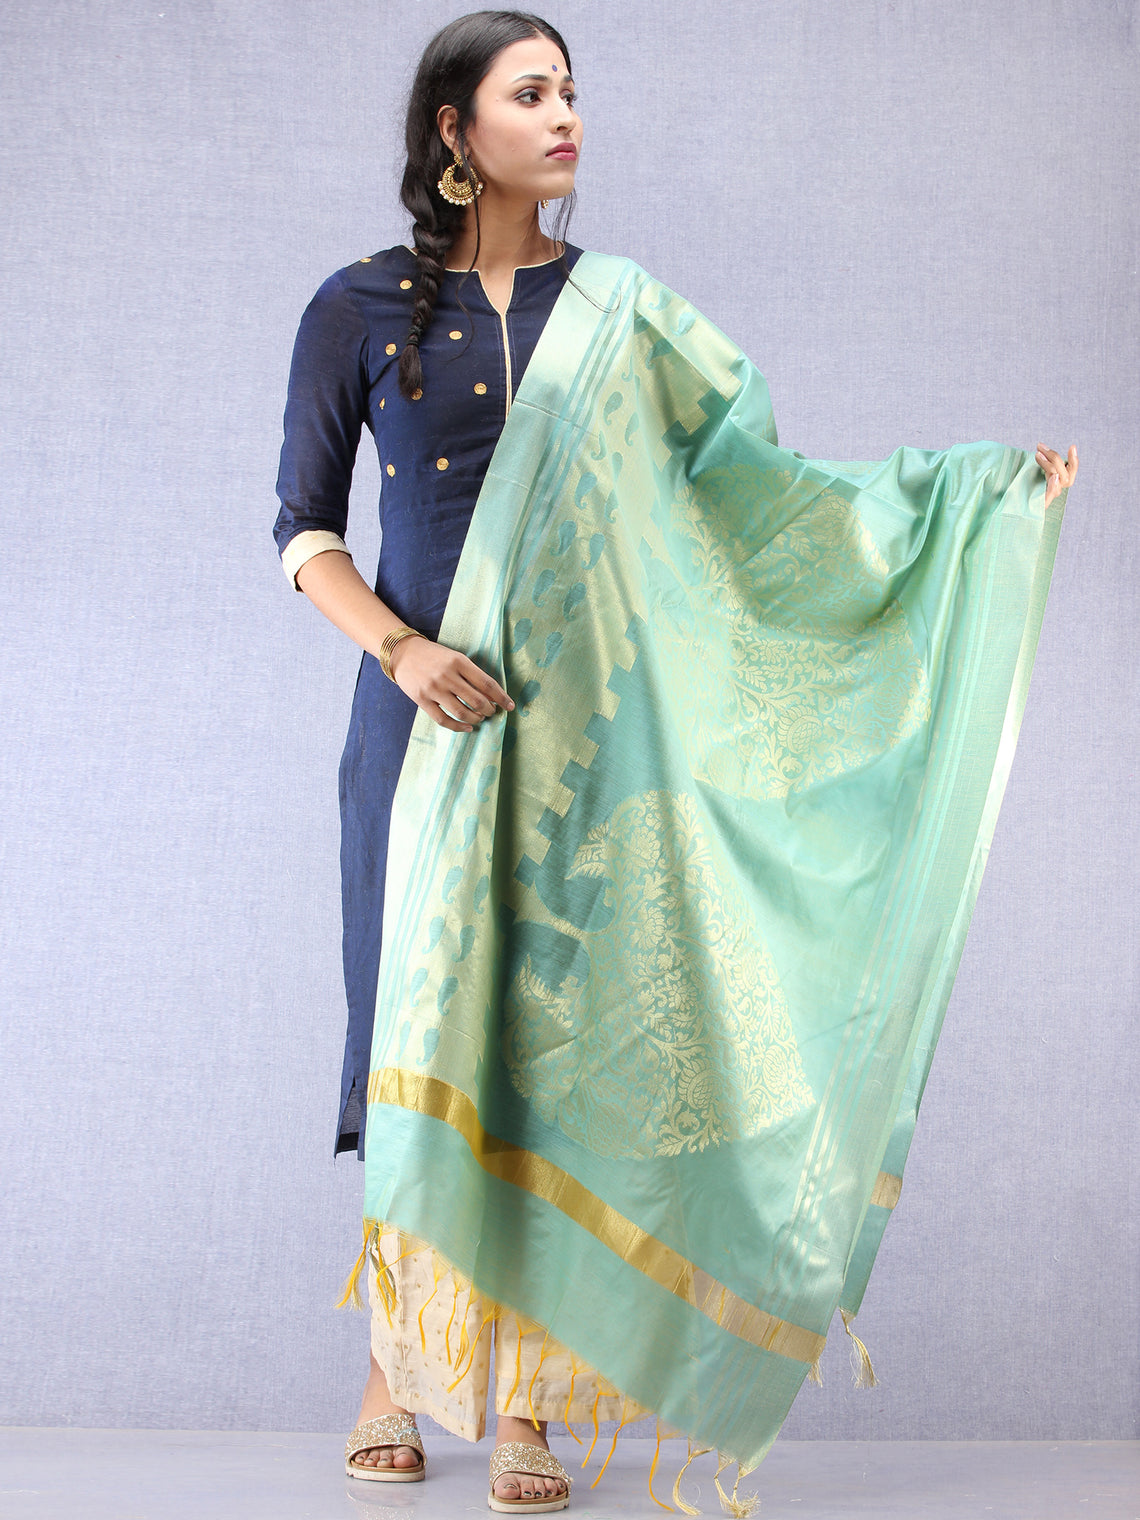 Banarasi Chanderi Dupatta With Zari Work - Sea Green & Gold - D04170798